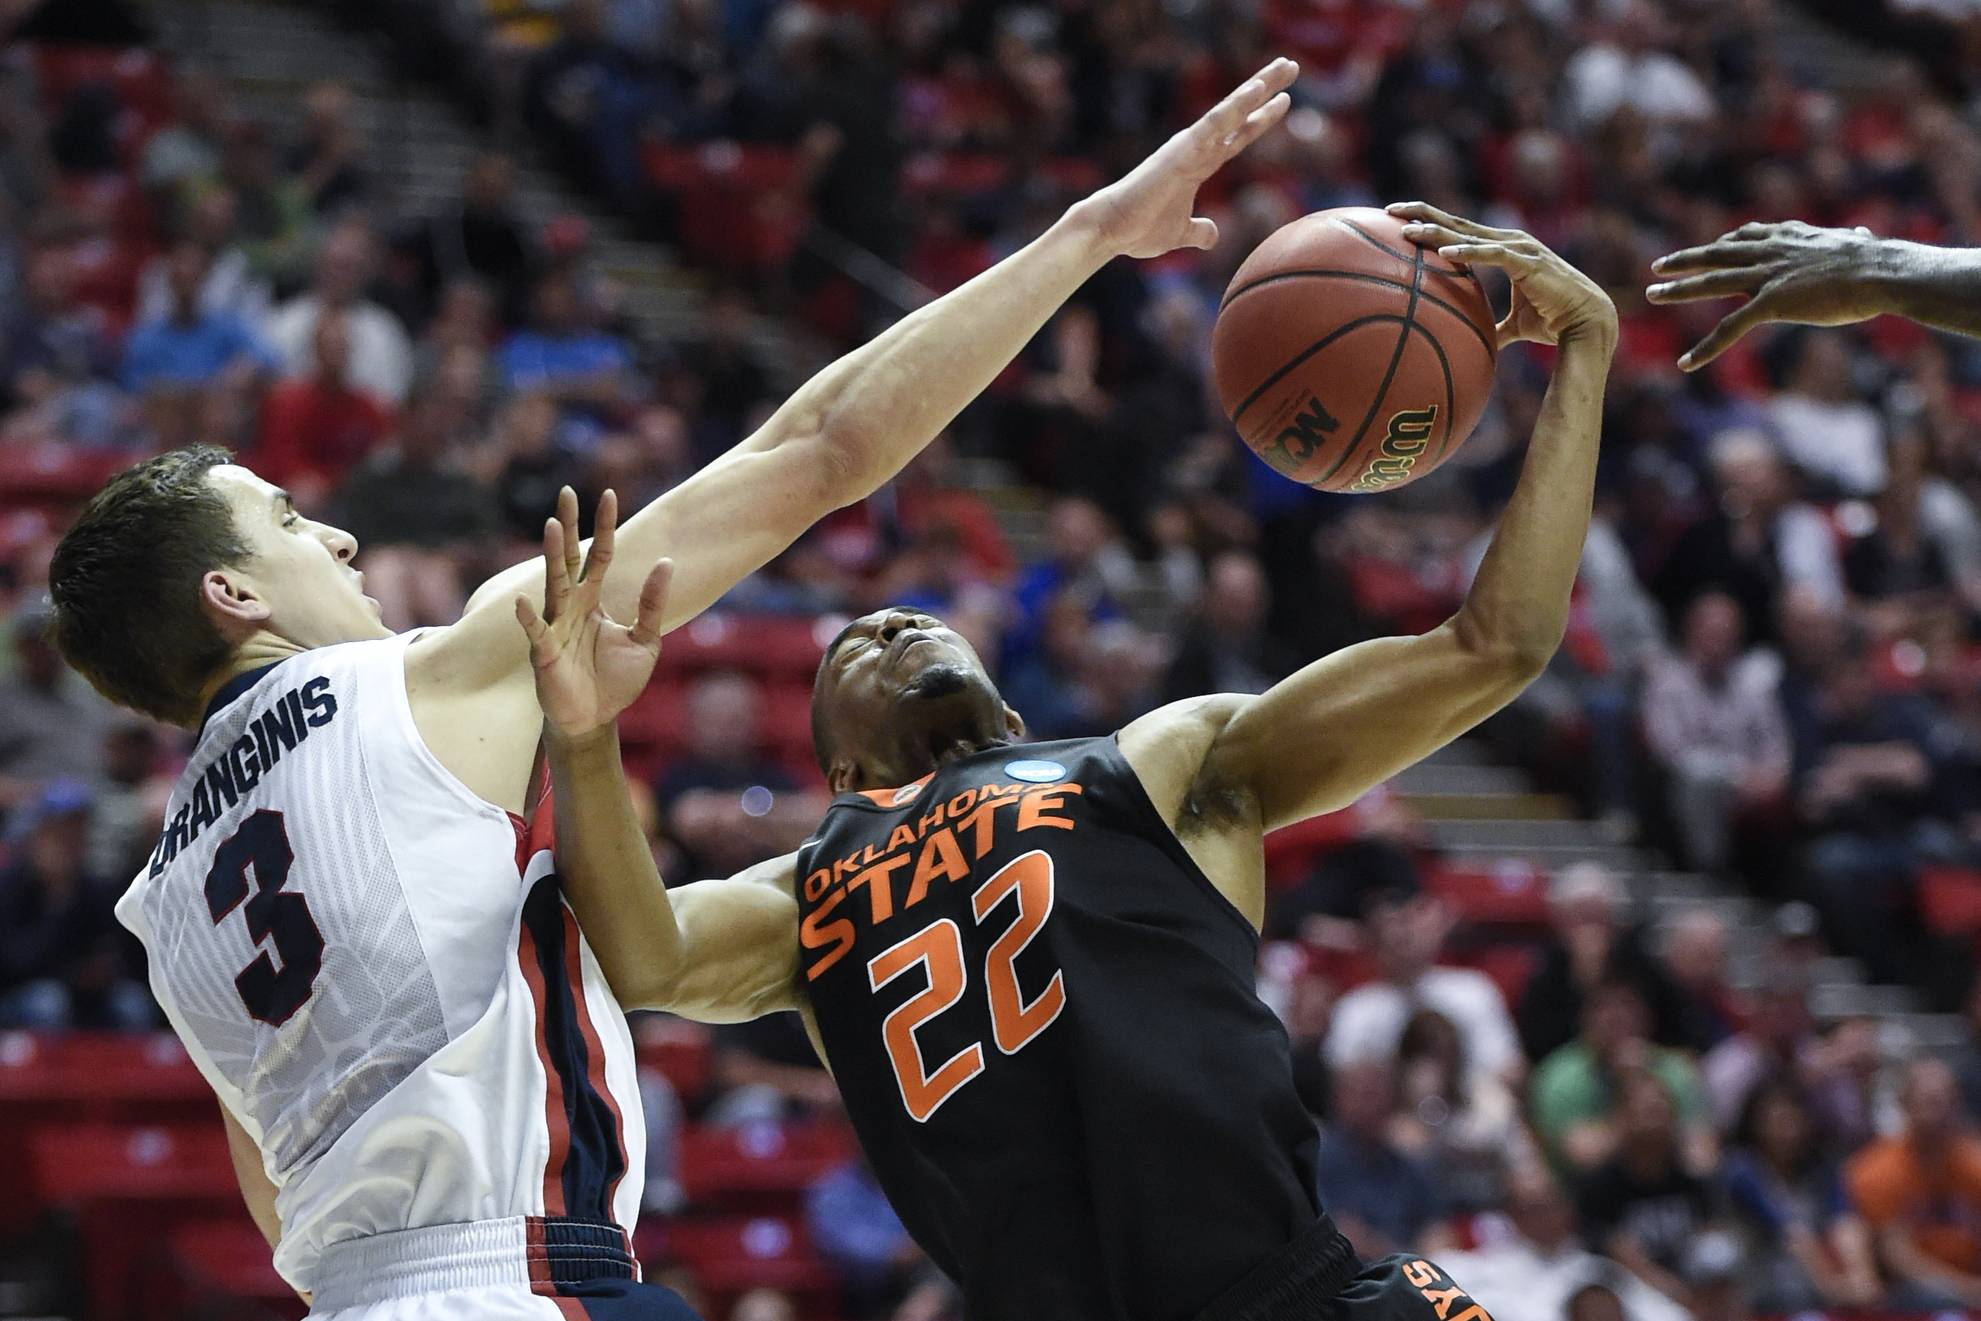 Pangos, Bell lead Gonzaga over Ok. State 85-77